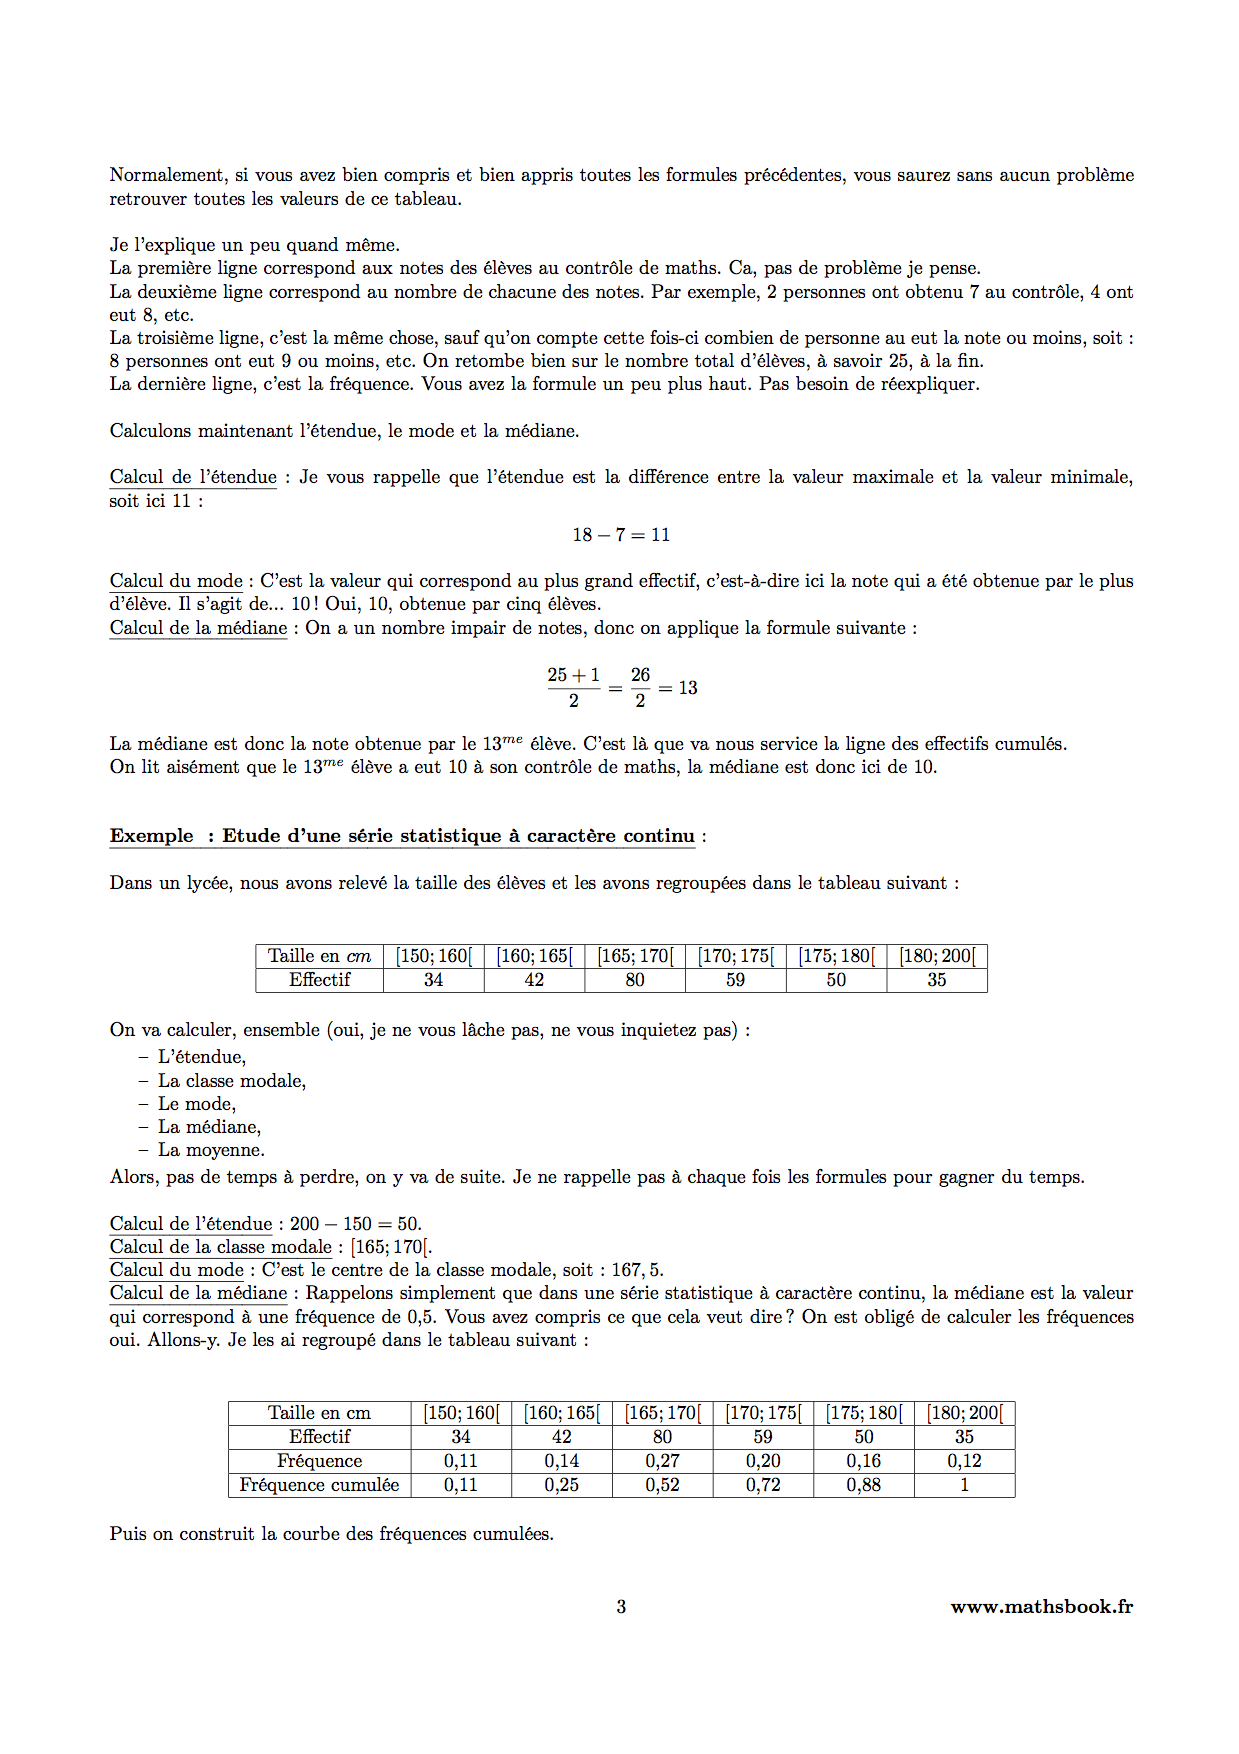 etude serie statistique moyenne